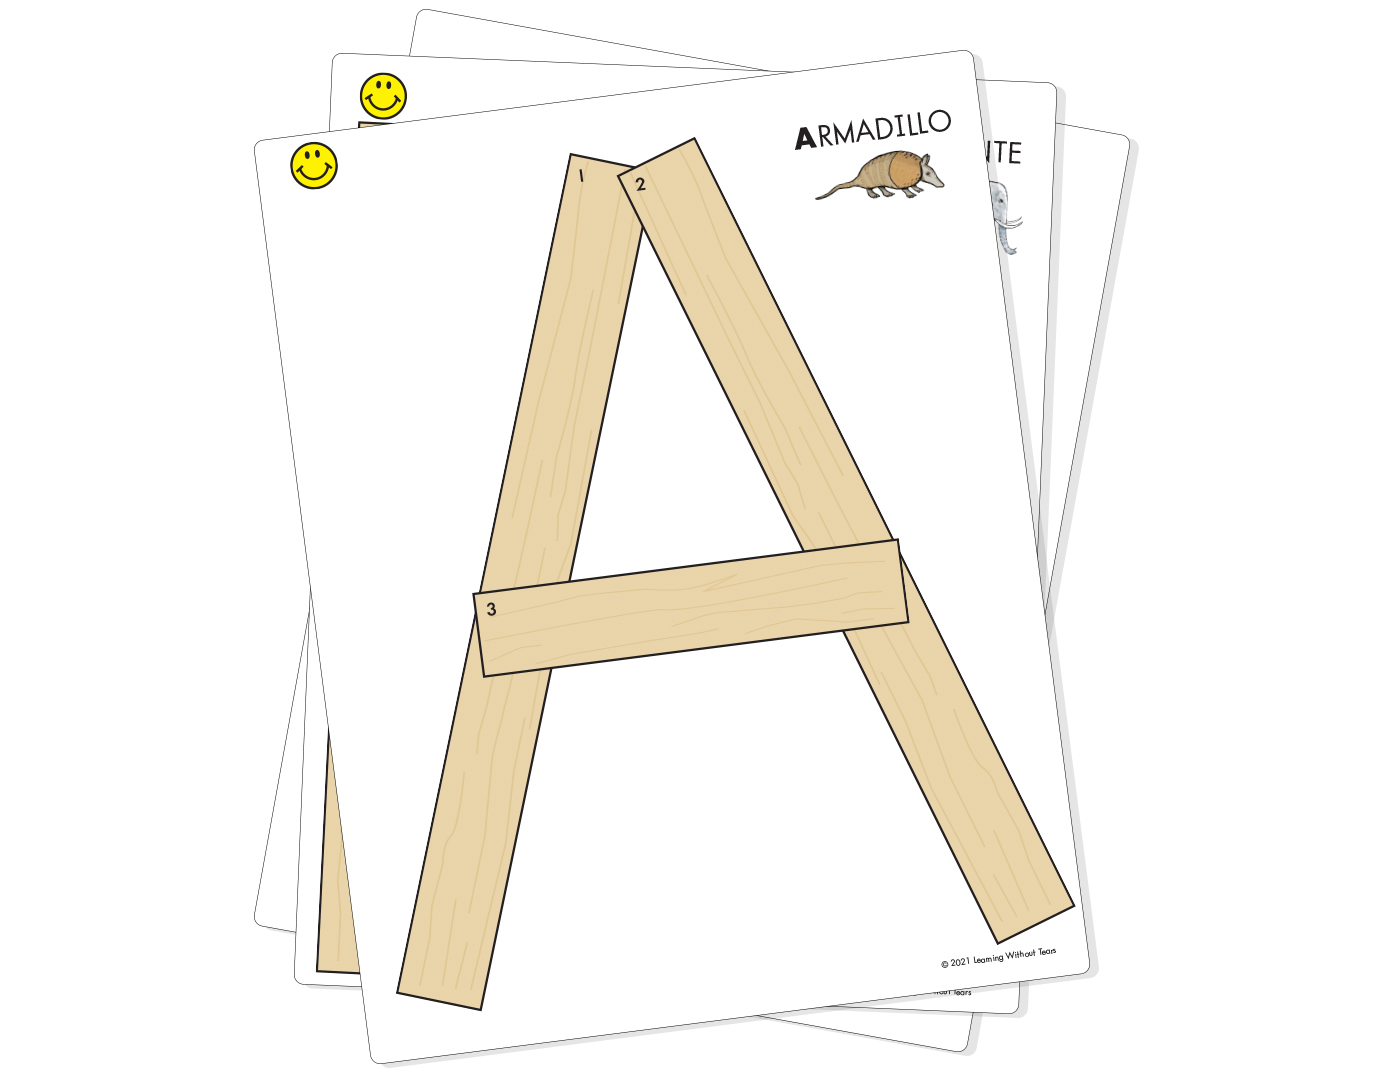 Capital Letter Cards for Wood Pieces - Laminated Spanish